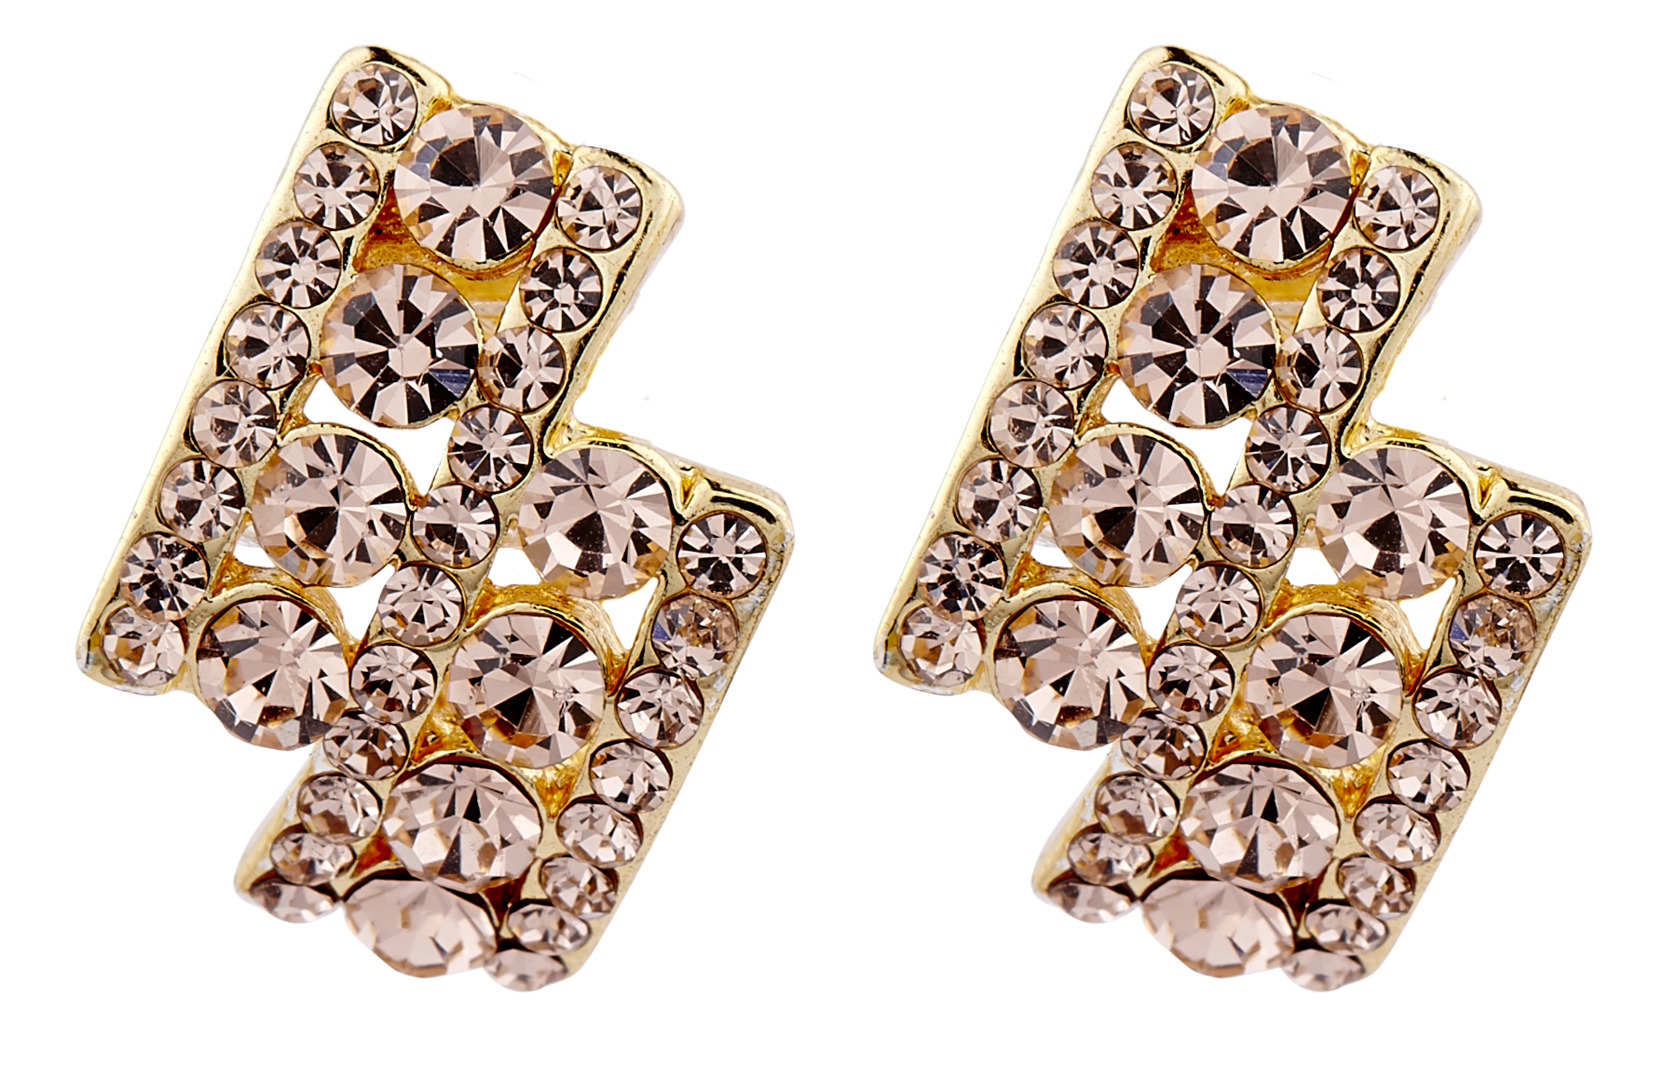 Clip On Earrings - Esme G - gold stud earring with gold crystal diamantes